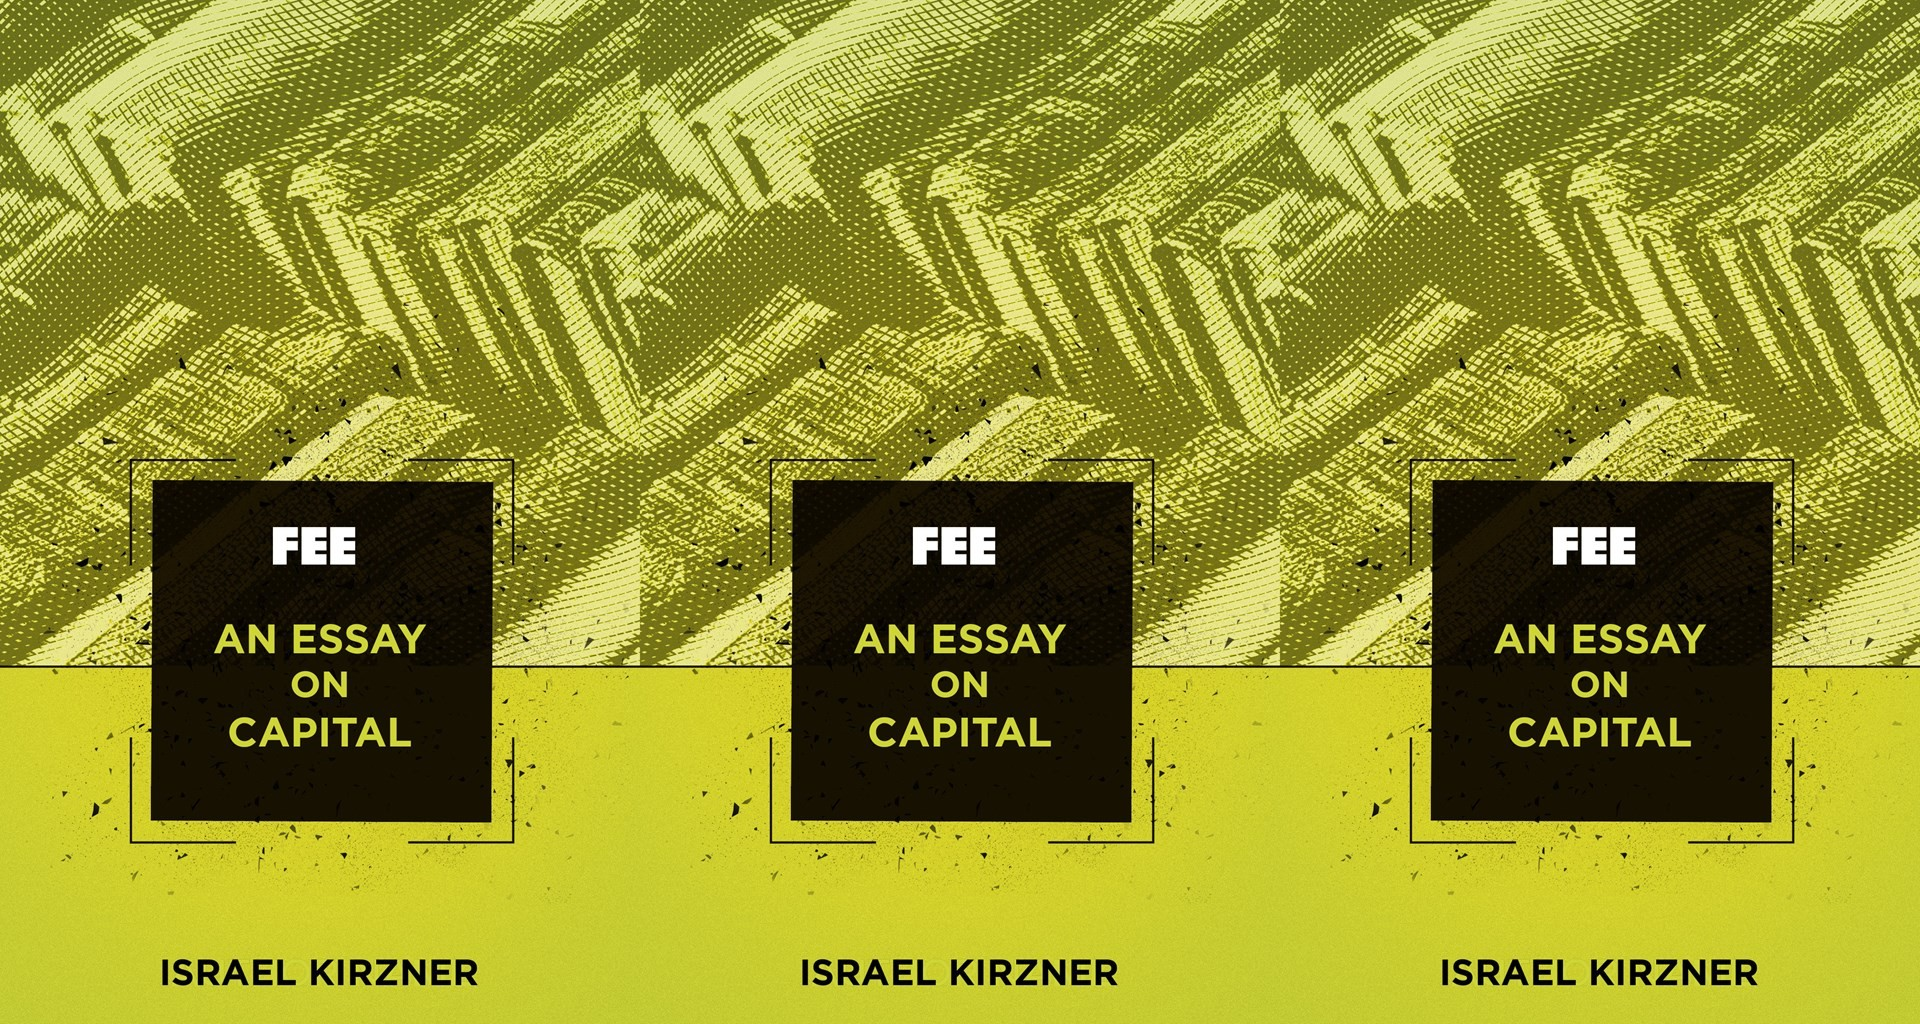 007 Kirzner Israelm Anessayoncapital Ebookanchorcentermodecropwidth1920rnd131503143810000000 Essay Capital Breathtaking Promo Codes Capitalism In The Usa 1900 To 1940 New Deal Reviews 1920